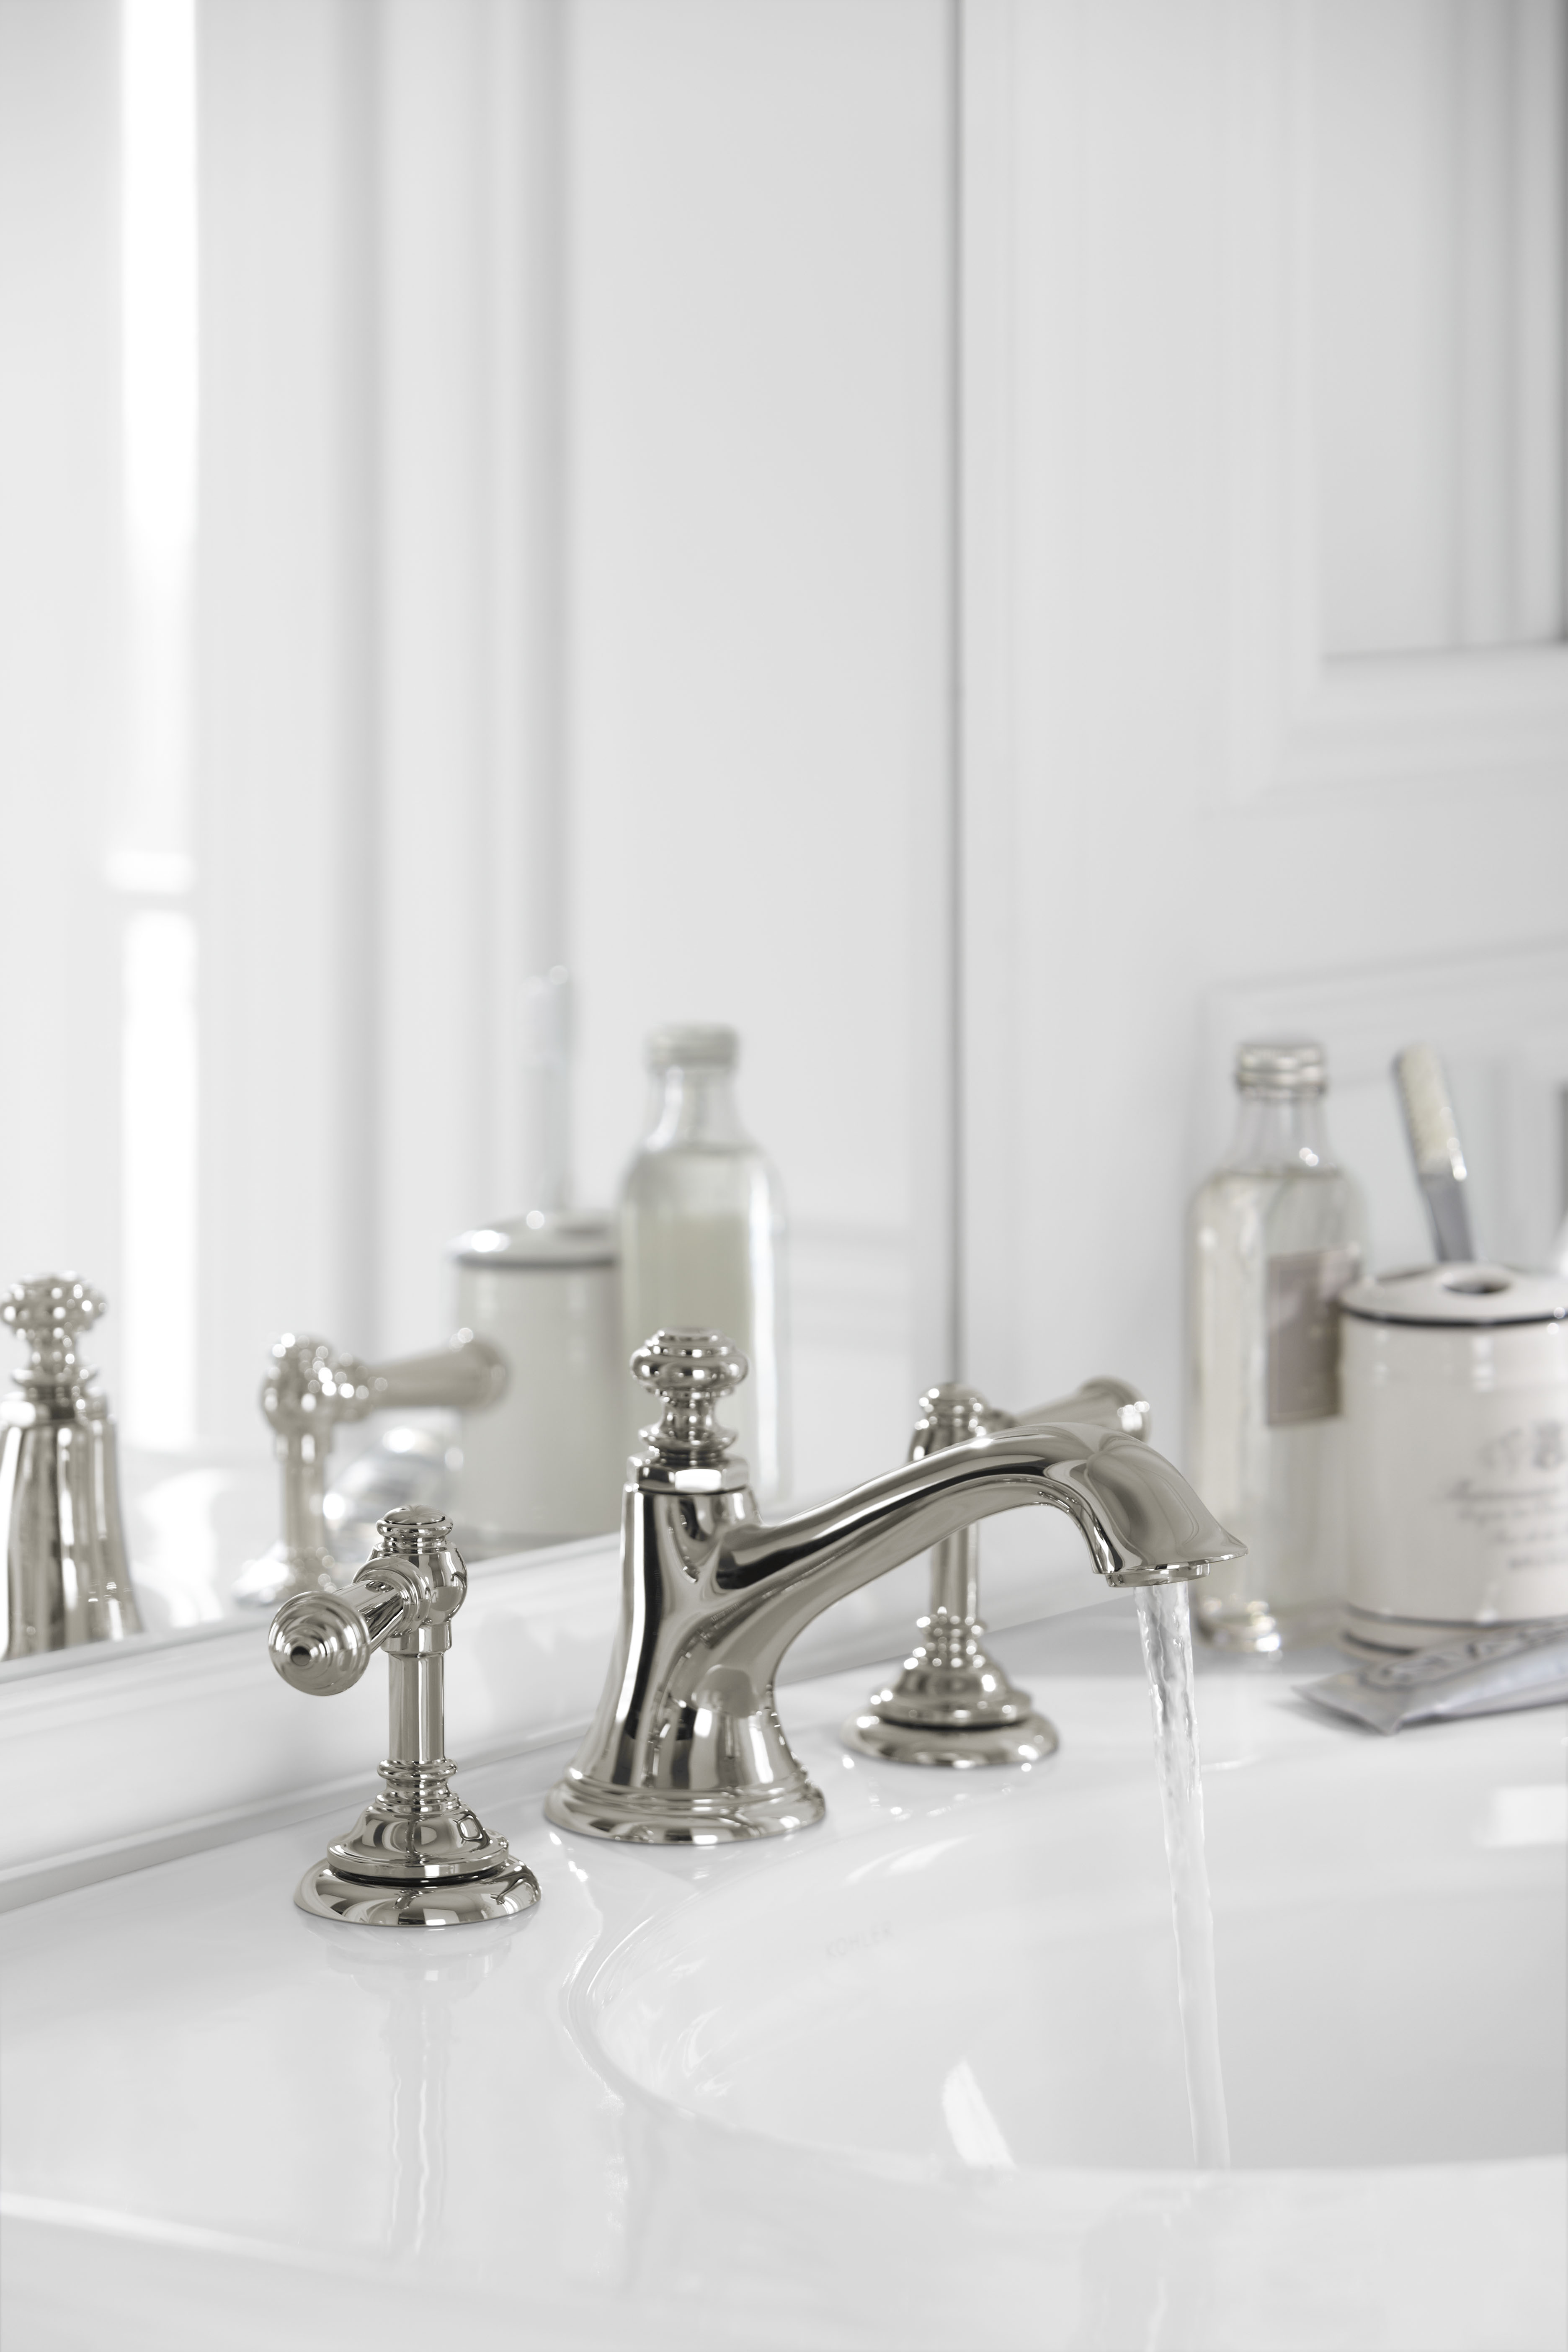 Artifacts Faucet Spout     Artifacts Faucet Handles     Bancroft Sink     With its subtle color, this Vibrant Polished Nickel finish embellishes the faucet's elegant detailing, while elevating this classic white space.